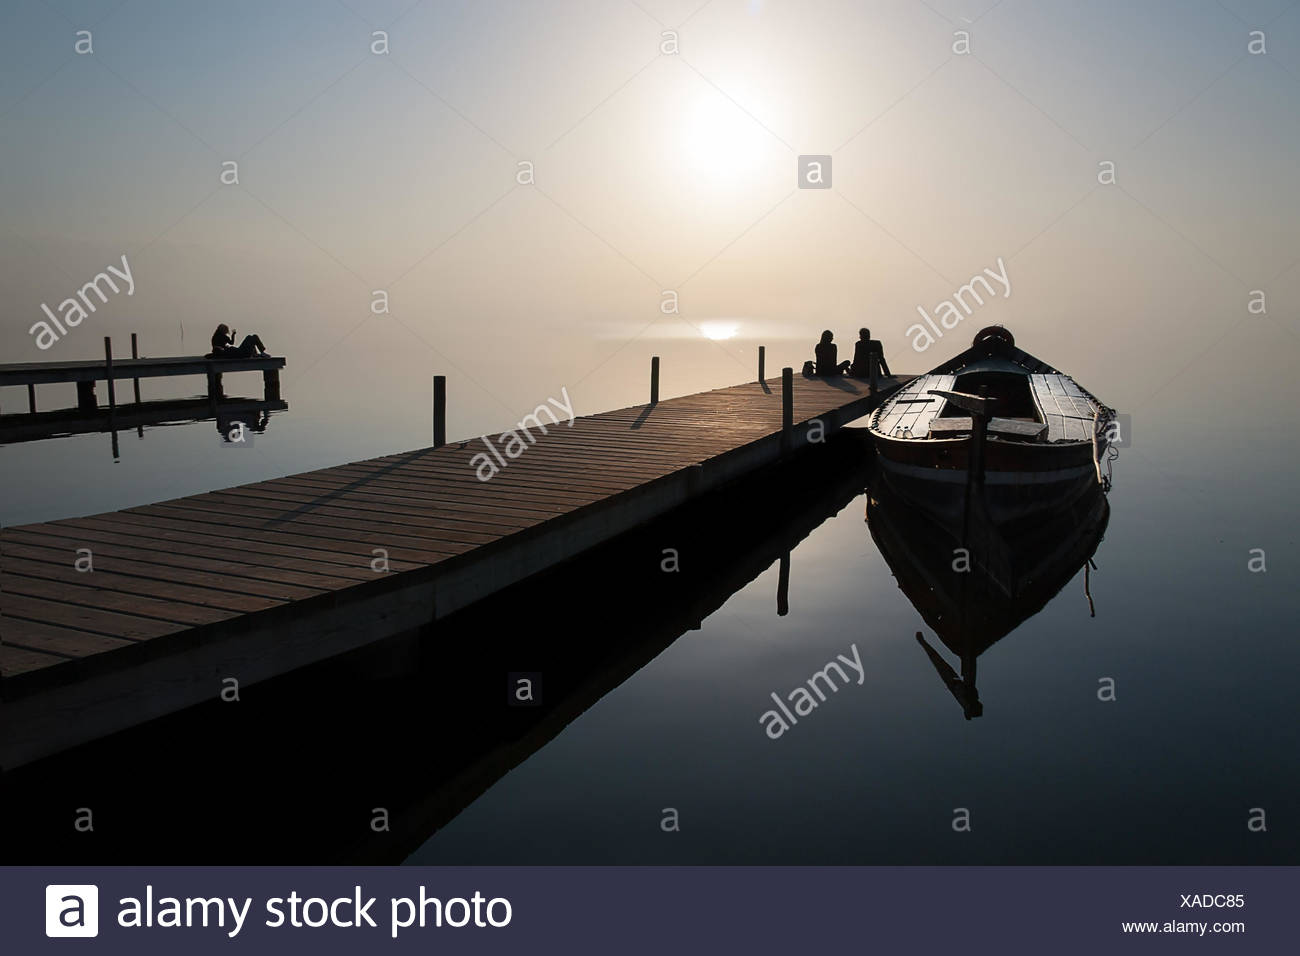 Silhouette of couple sitting at end of jetty by moored boat - Stock Image